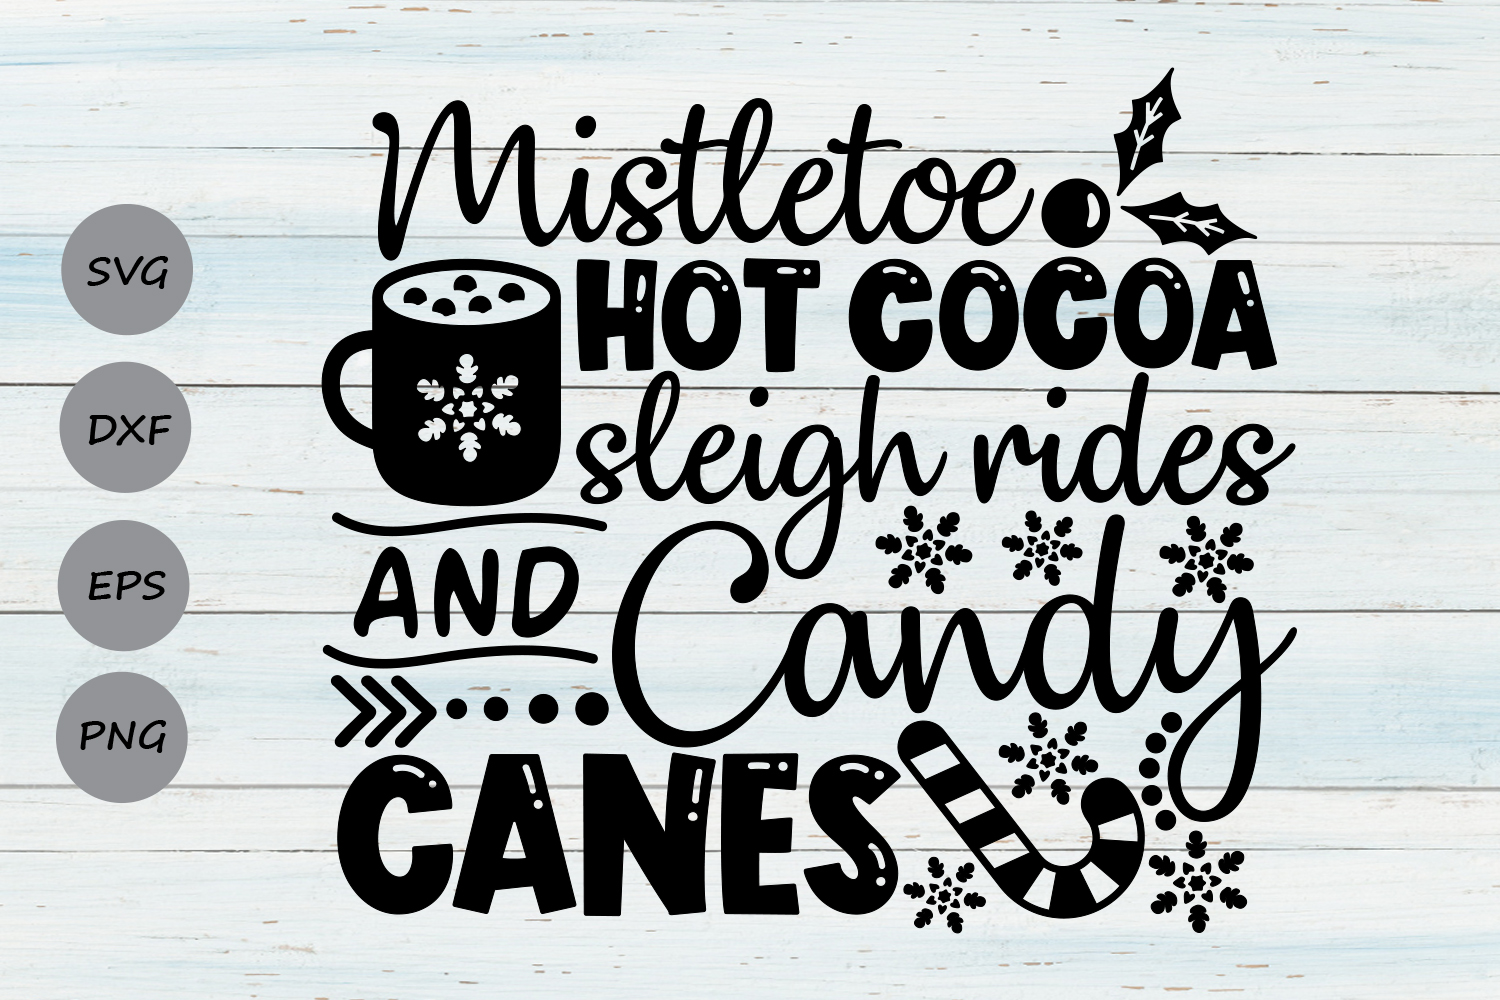 Mistletoe Hot Cocoa Sleigh Rides Candy Canes Svg, Winter Svg example image 1